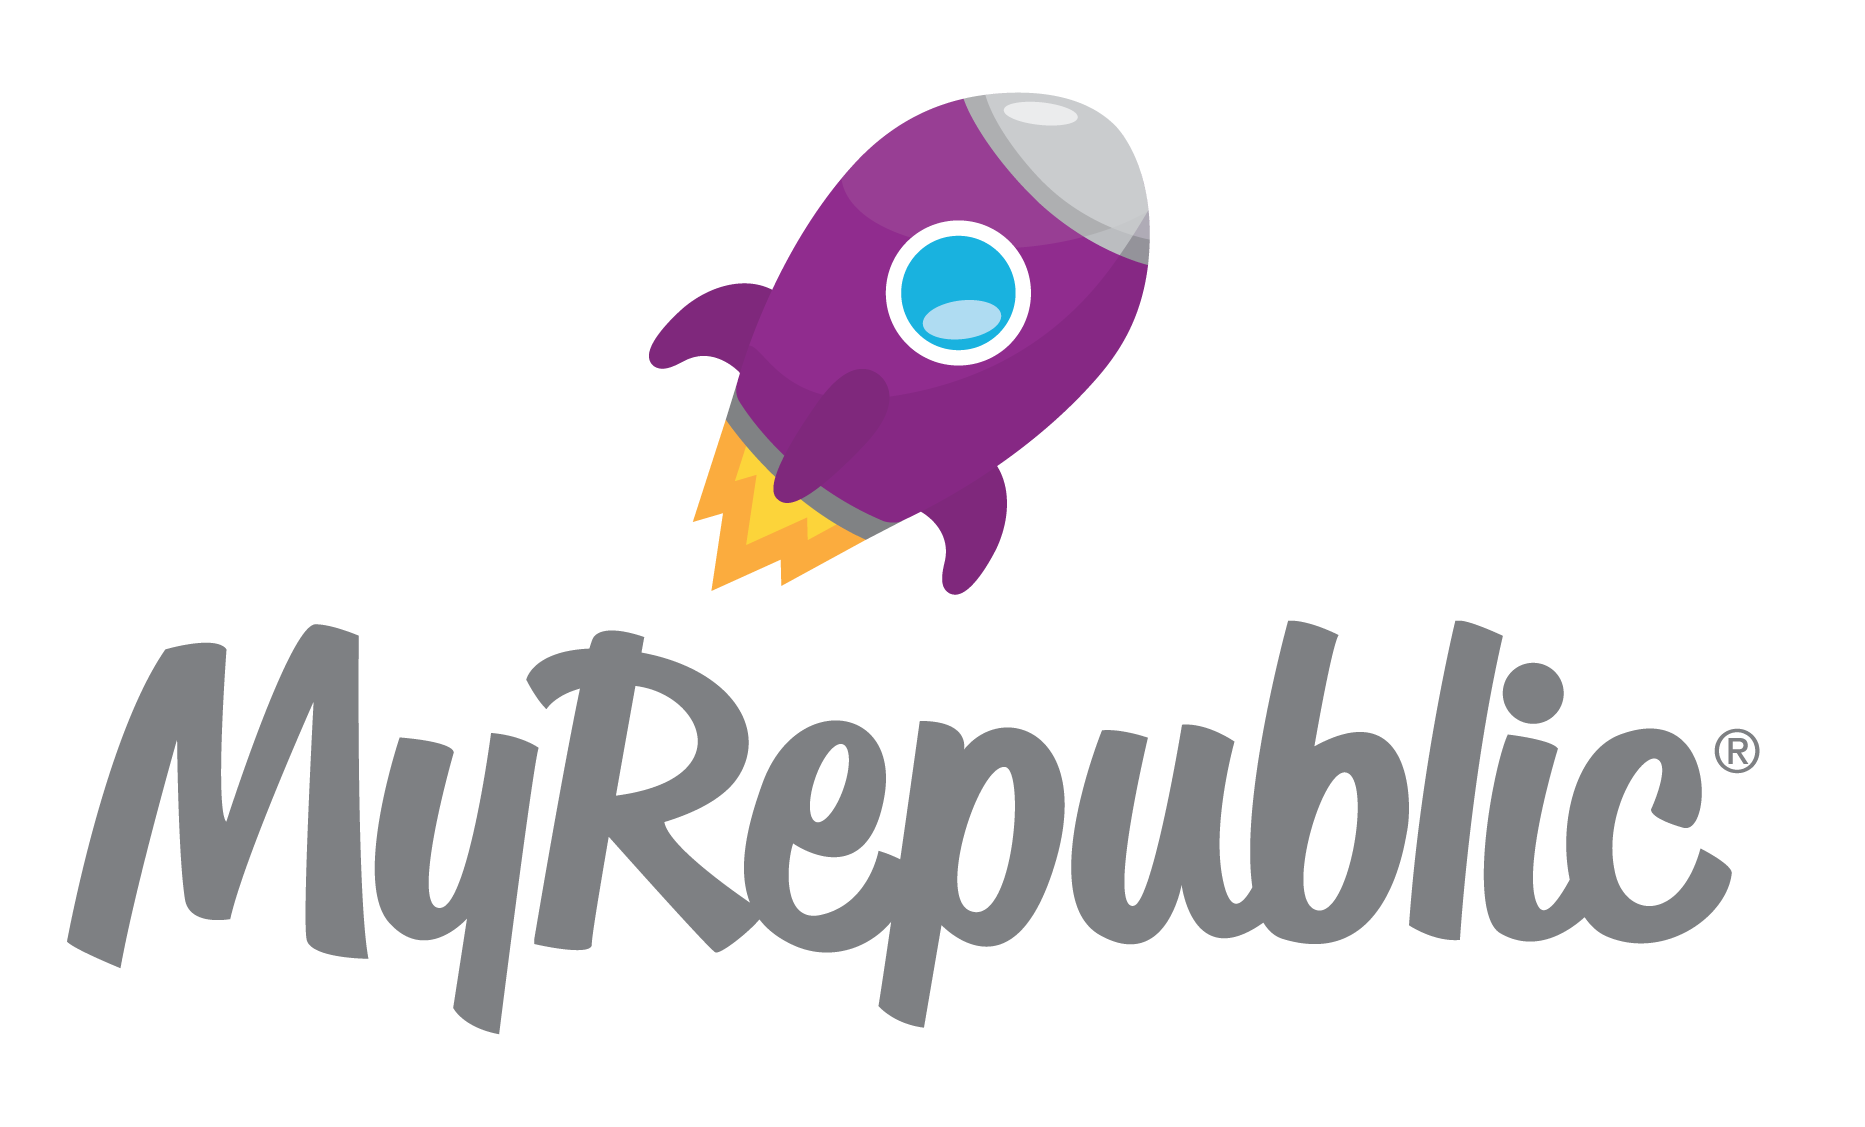 MyRepublic Full colour 4c logo vertical grey 1